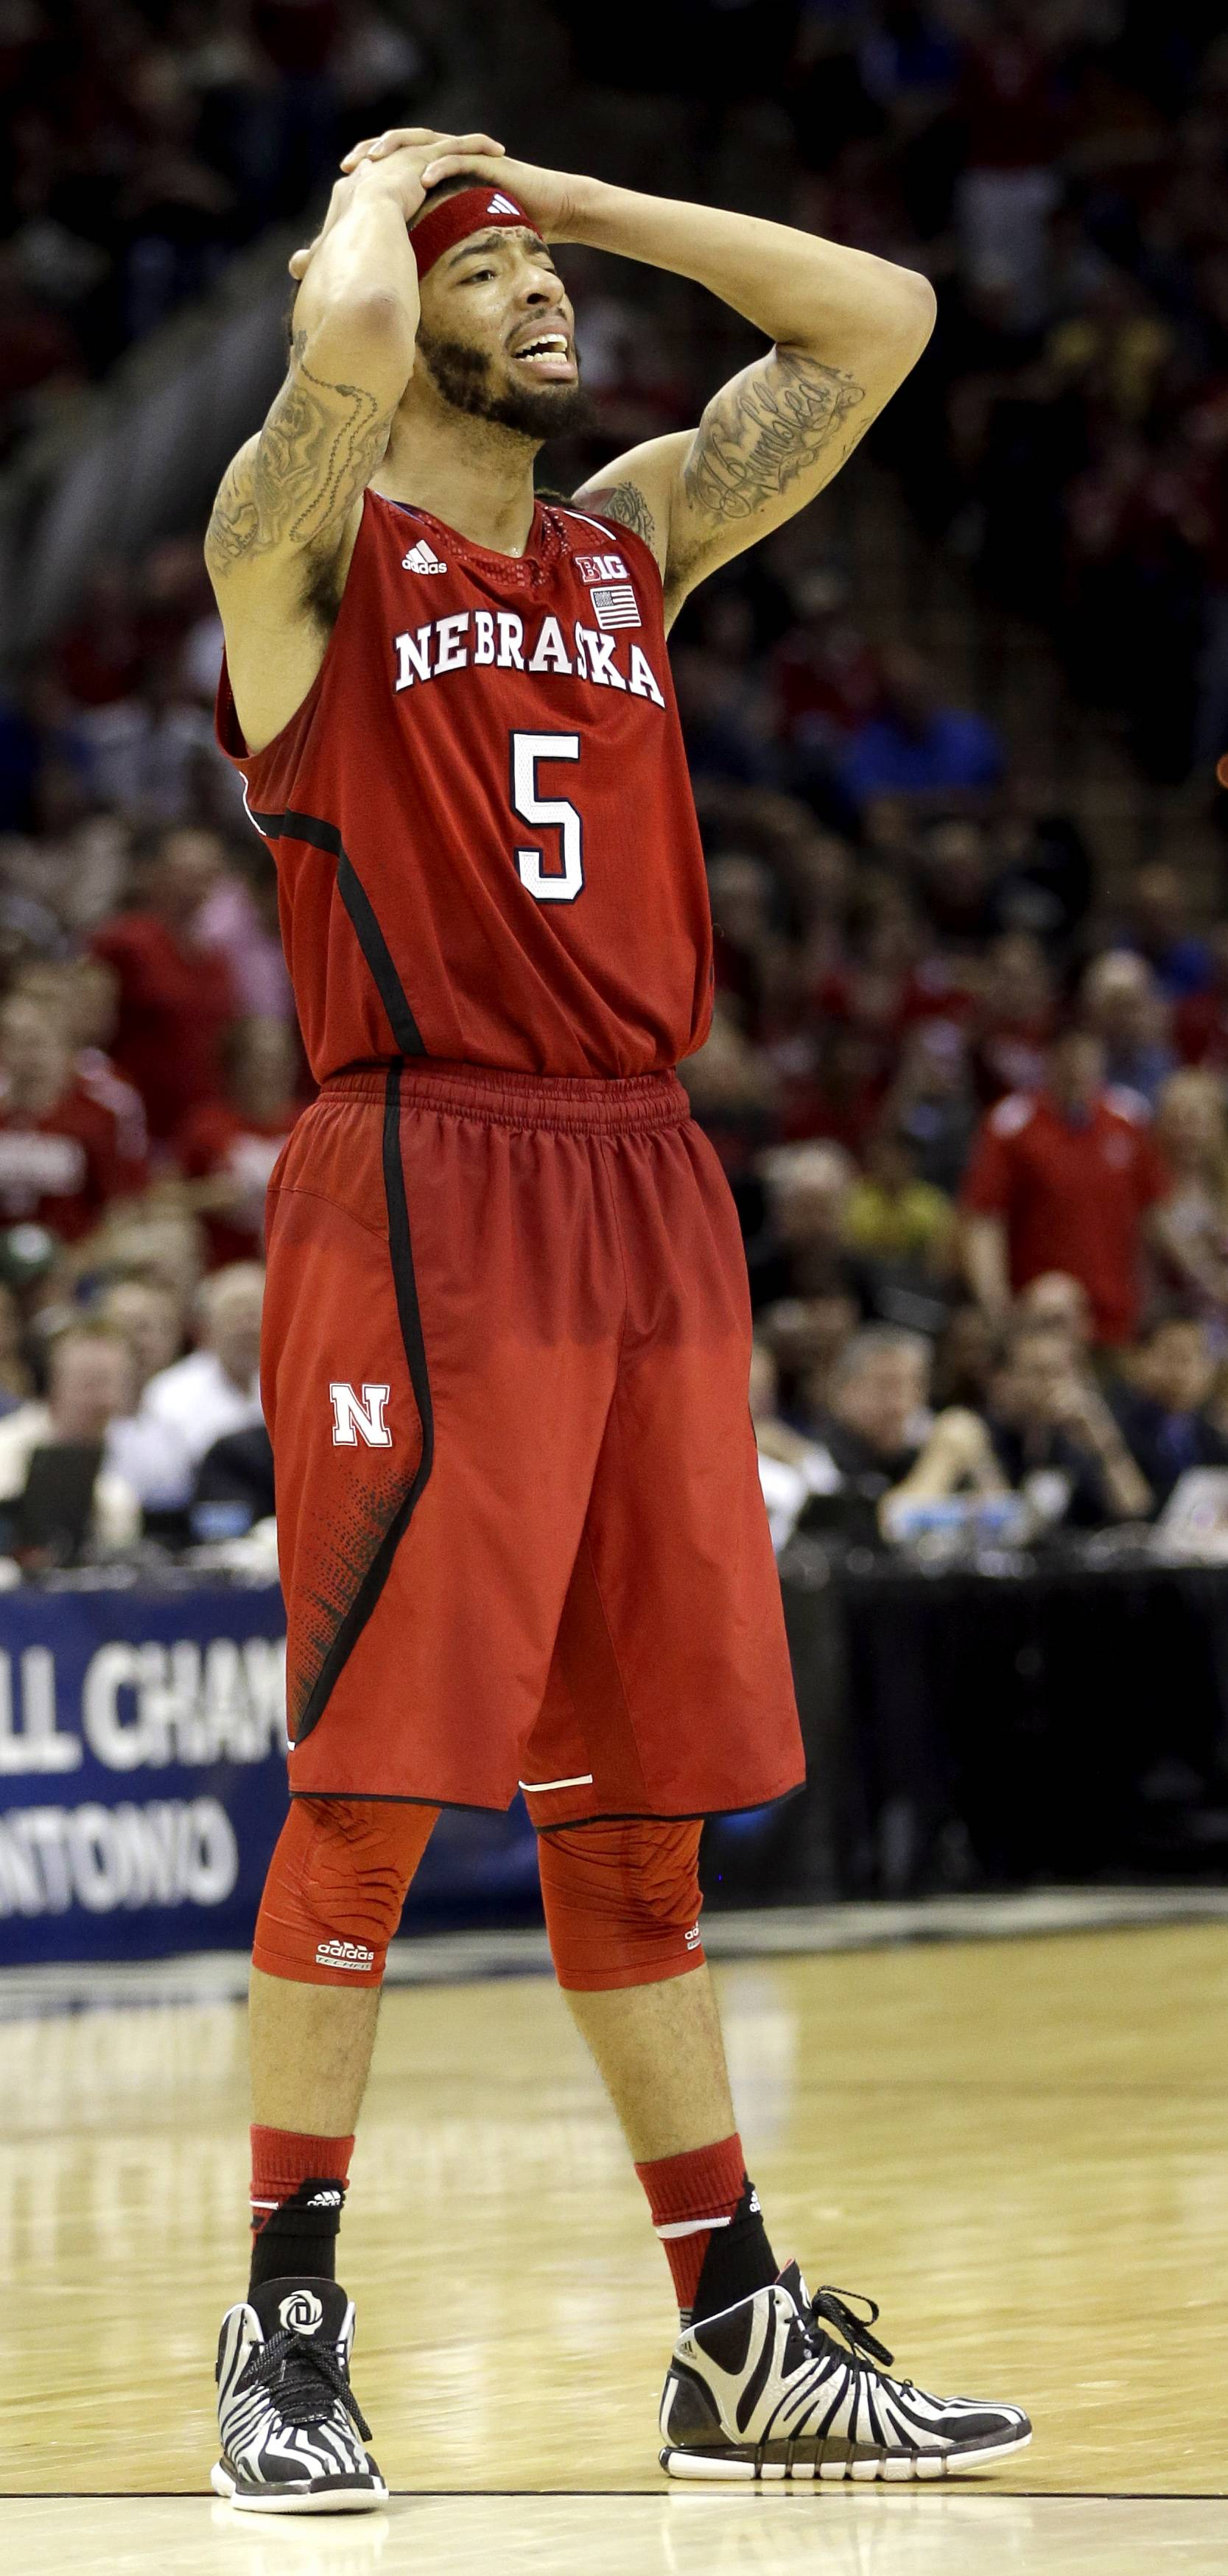 Nebraska's Terran Petteway (5) reacts after a foul call during the second half of a second-round game against Baylor in the NCAA college basketball tournament Friday, March 21, 2014, in San Antonio. Baylor won 74-60.